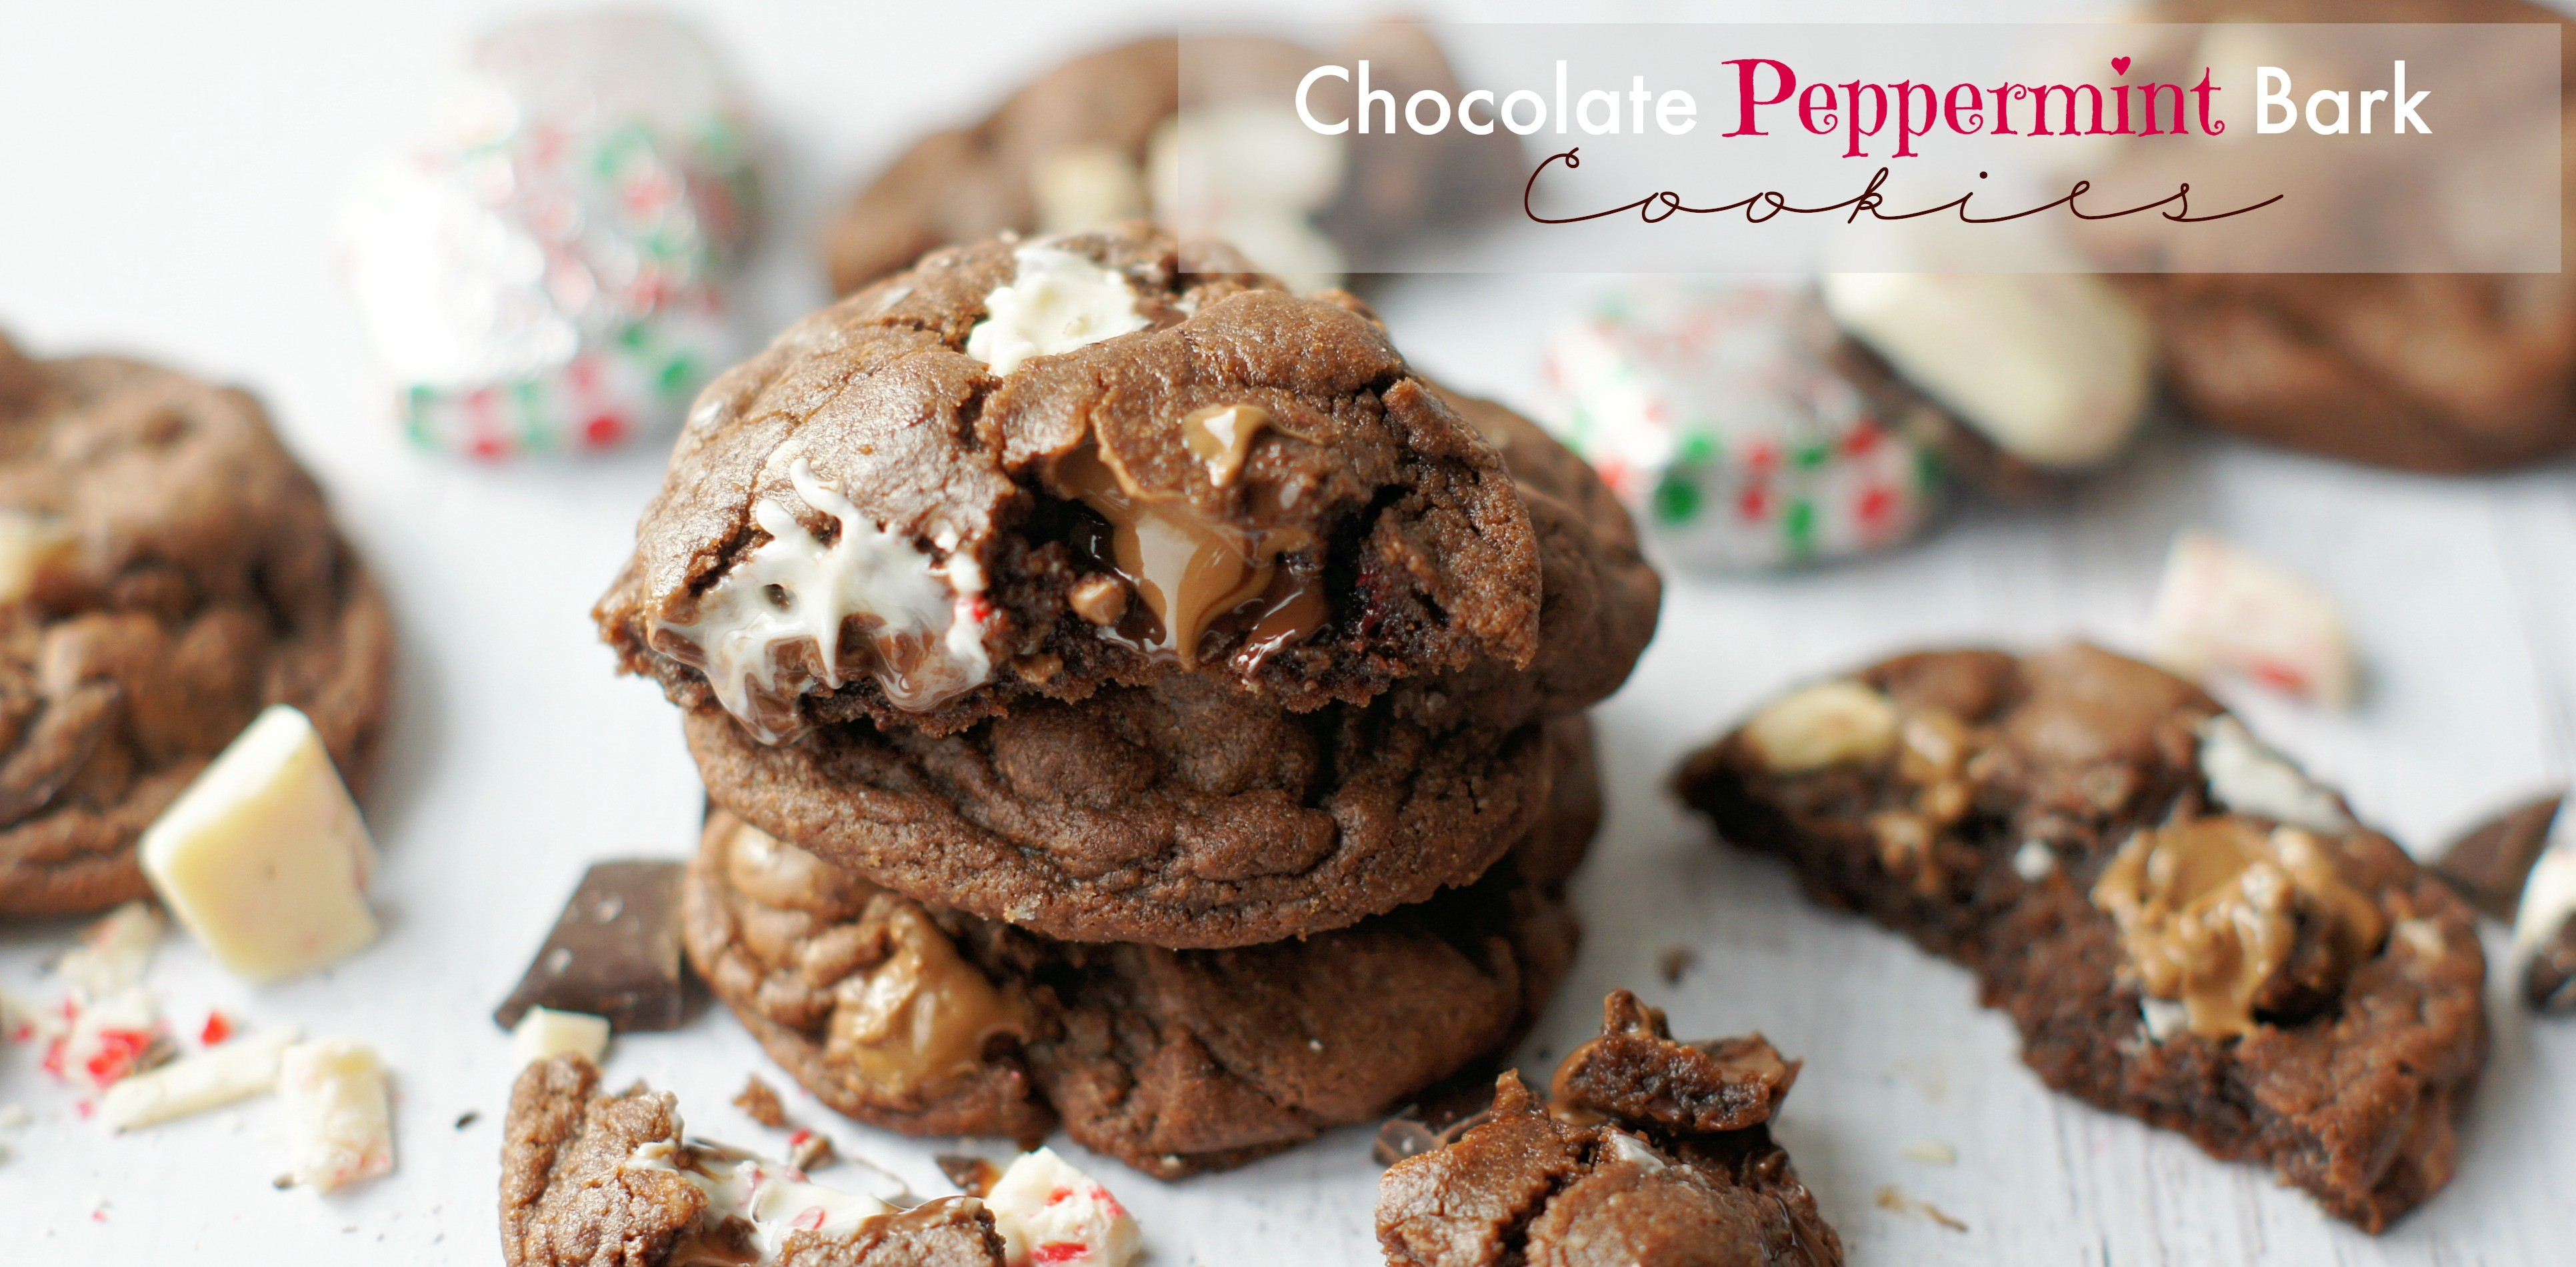 Chocolate Peppermint Bark Cookies - 5 Boys Baker